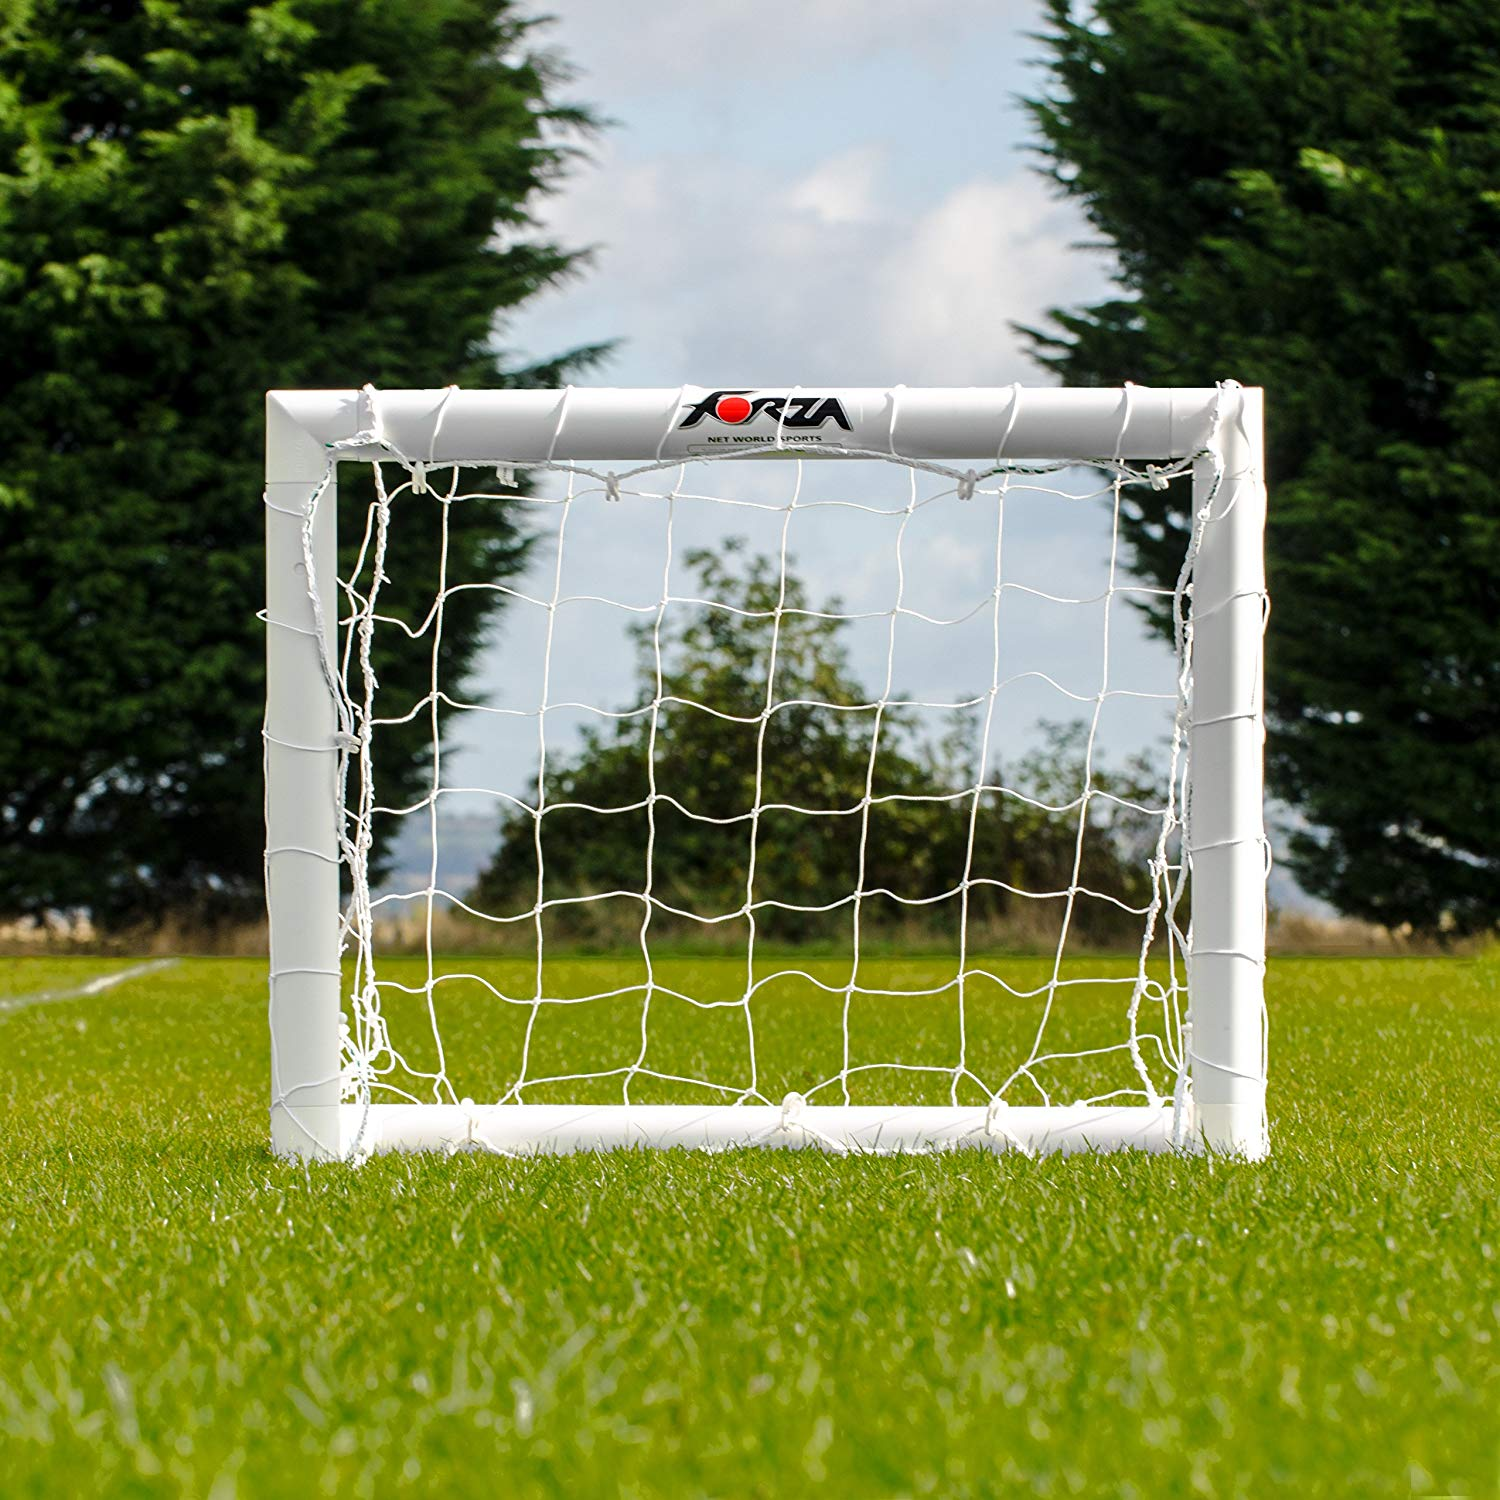 Get Quotations · FORZA Kids Soccer Goal  Huge 75% Deep Discount SALE!  eb8f5de088af